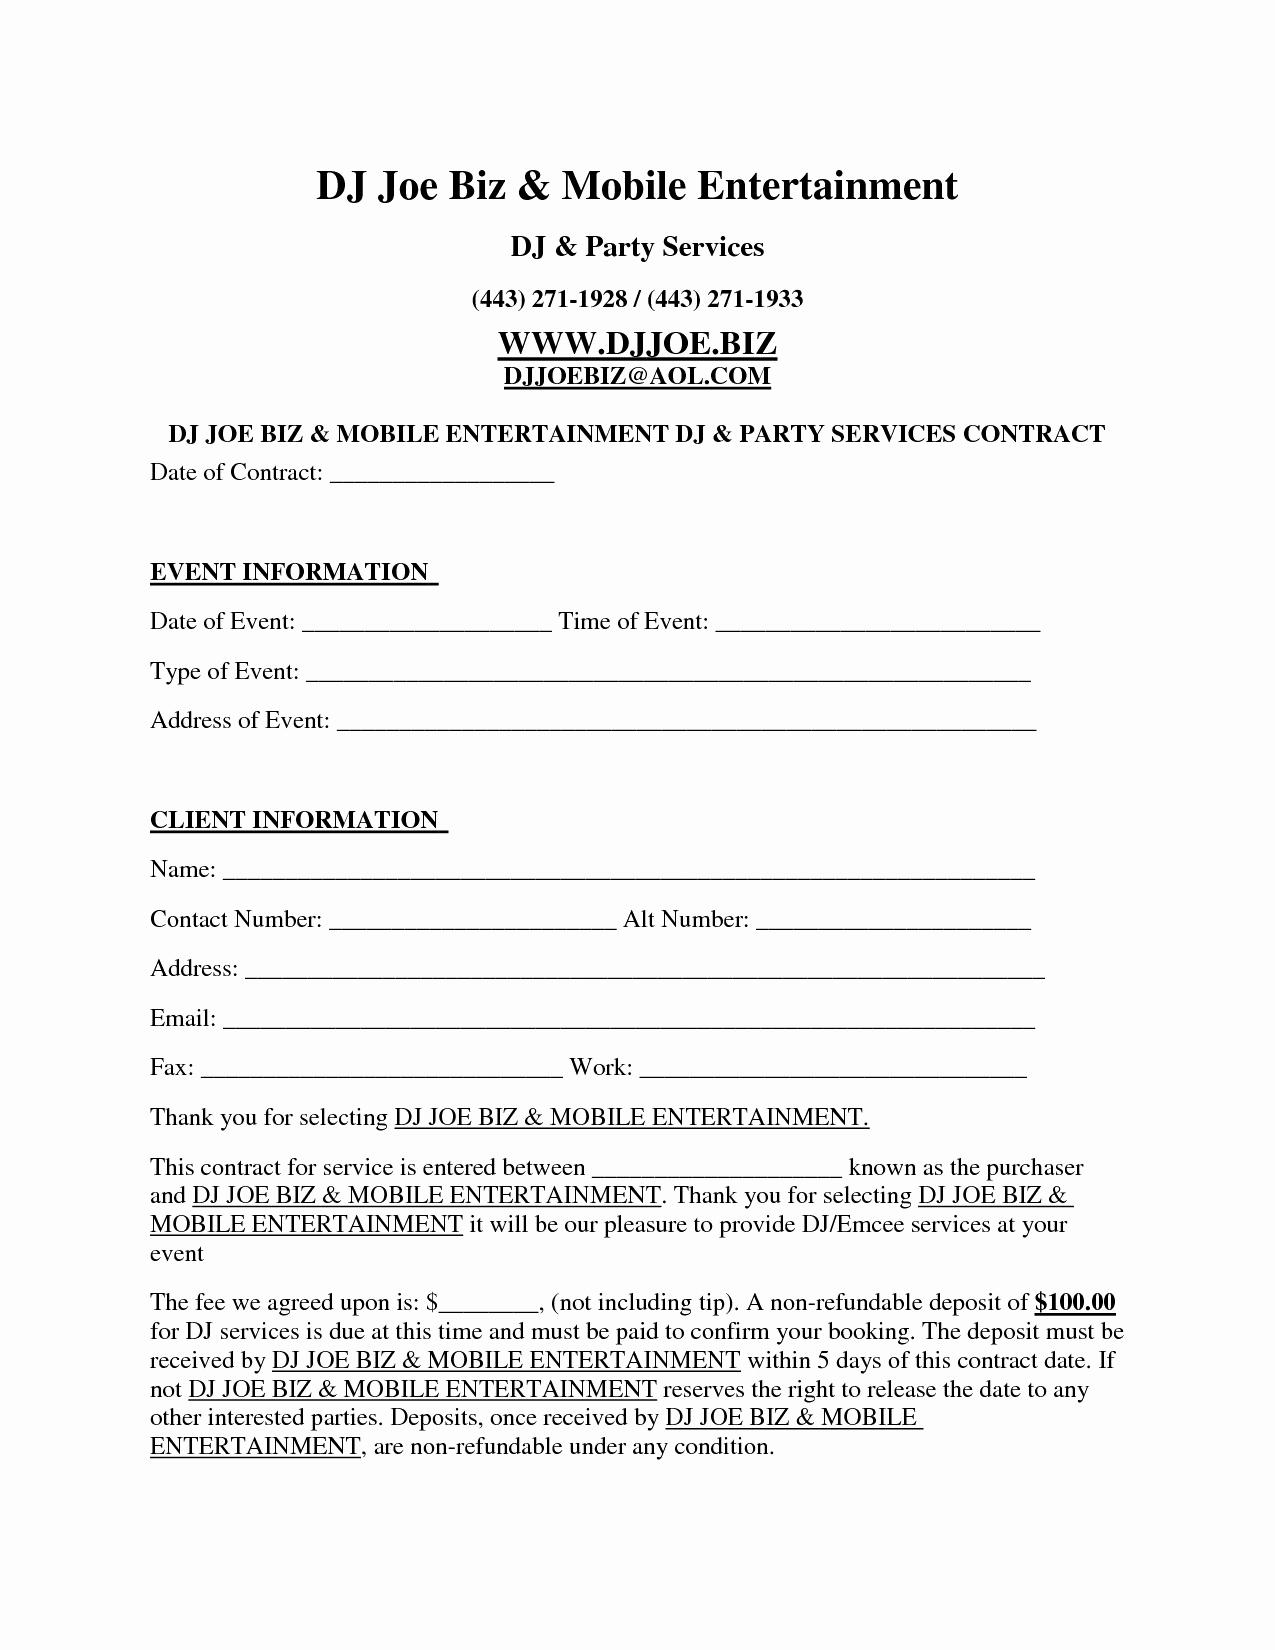 Entertainment Service Contract Template